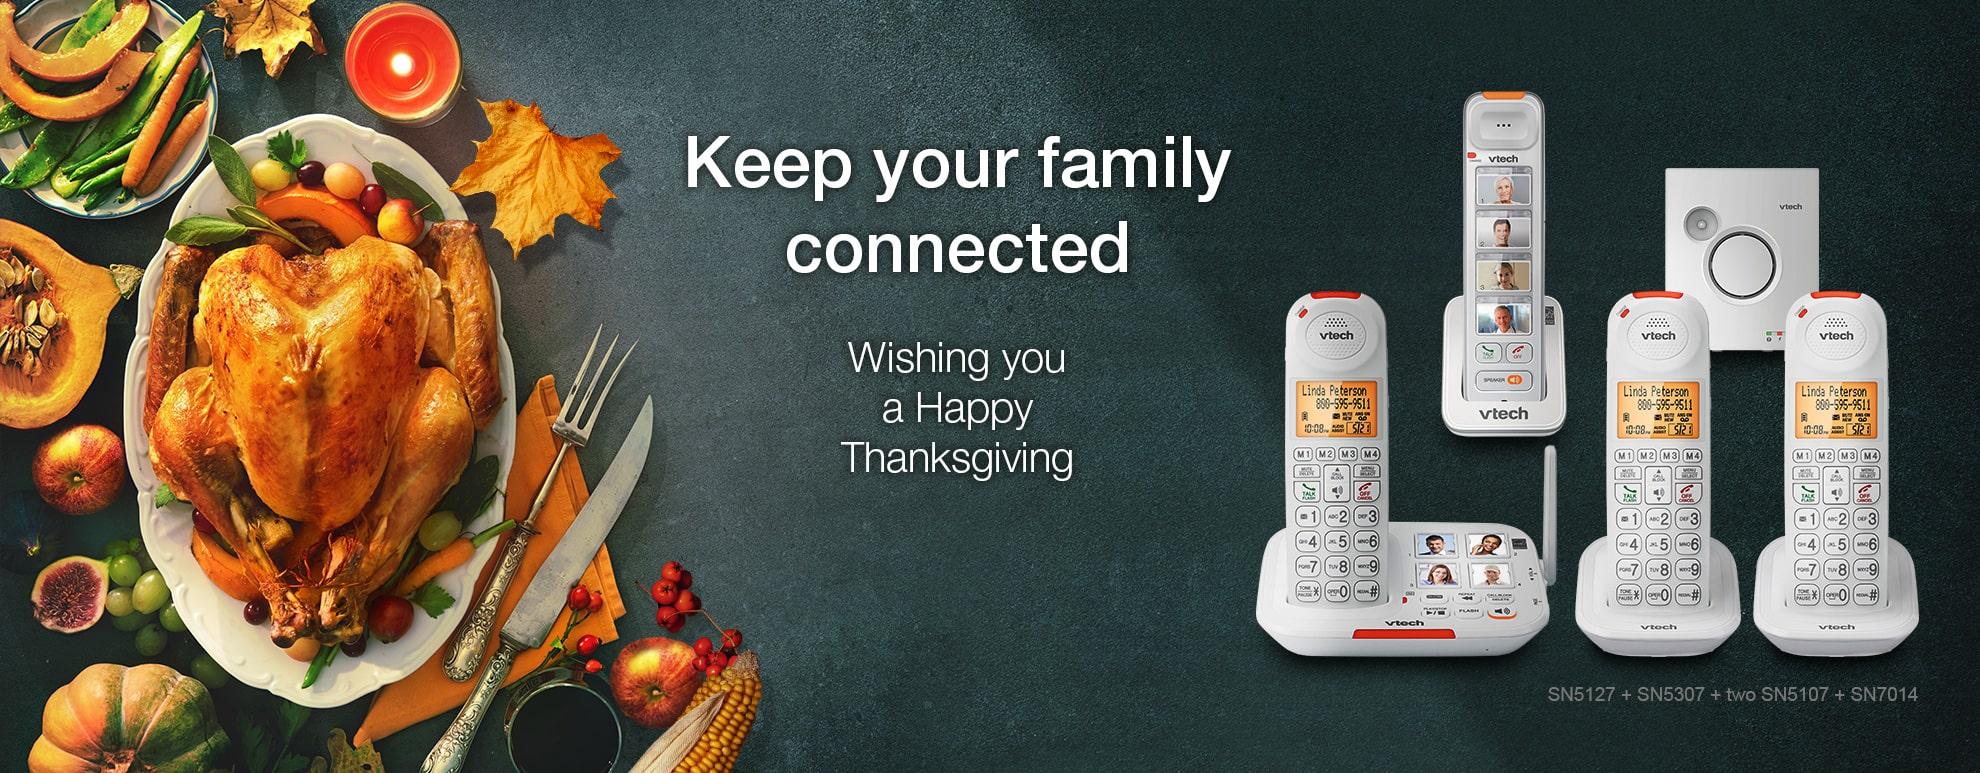 Keep your family connected - Wishing you a Happy Thanksgiving